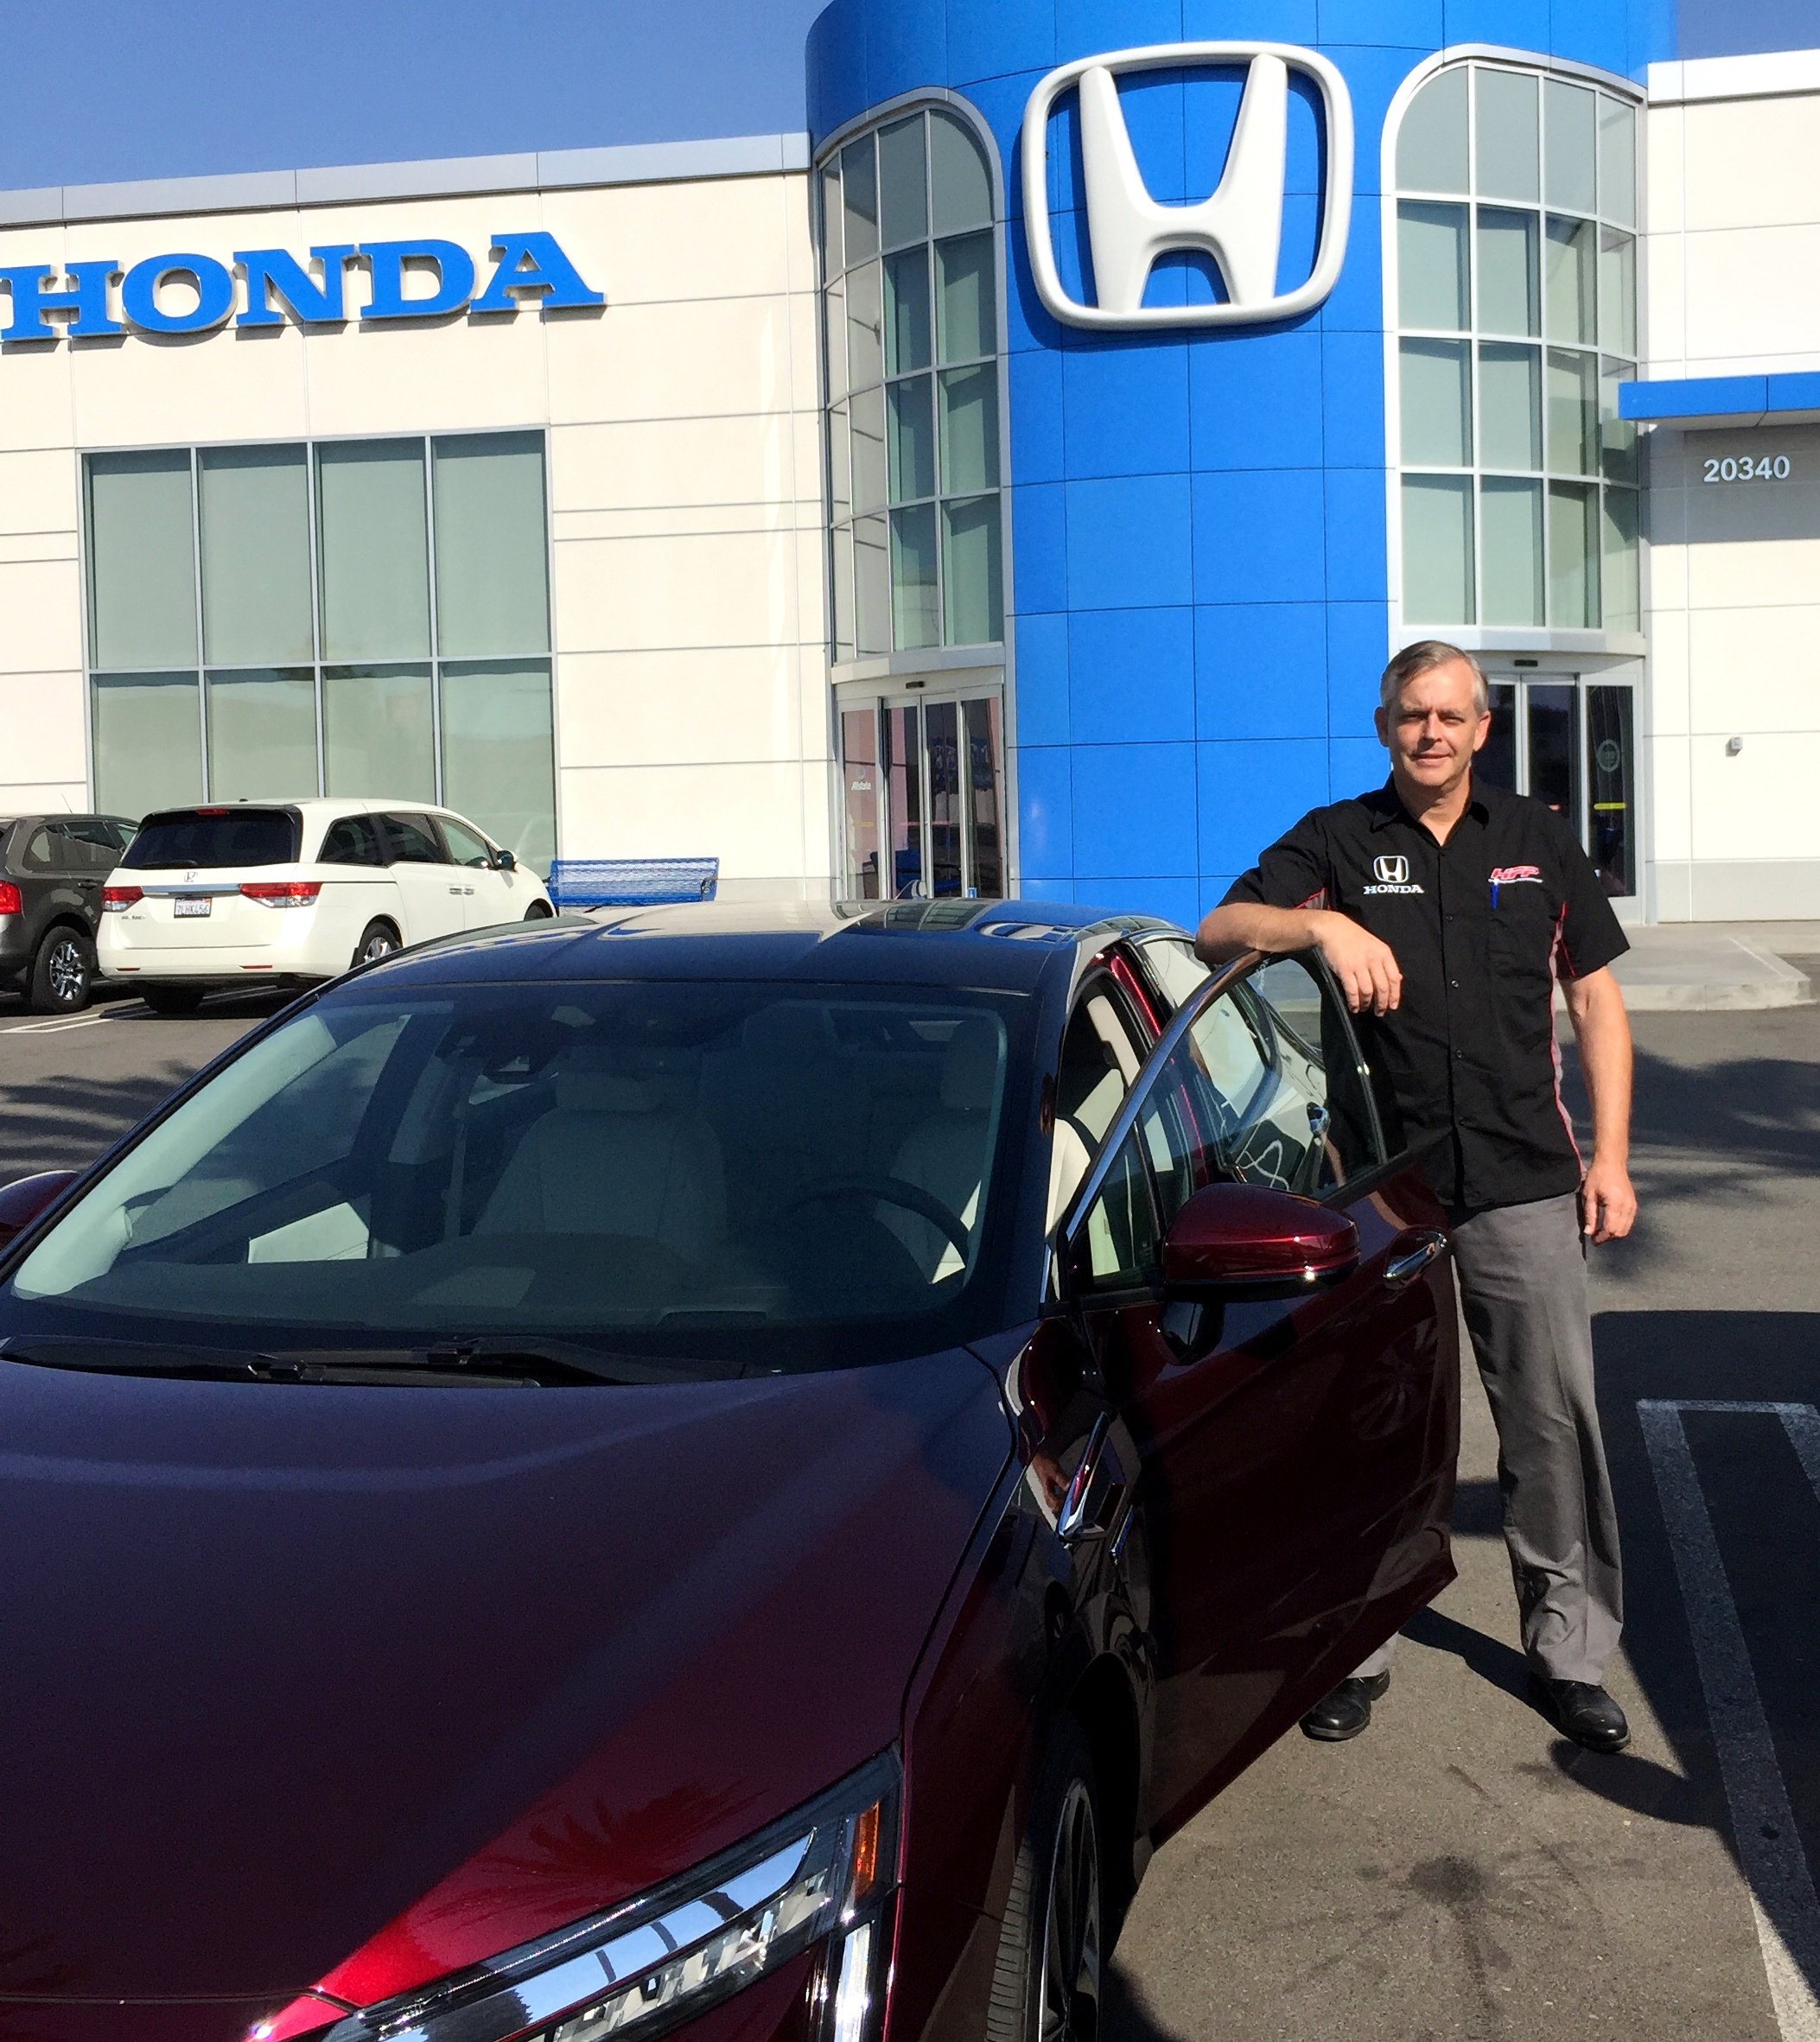 Palos Verdes Native Brett Wright Is One Of Two Specially Trained Clarity Salesmen At Scott Robinson Honda In Torrance Photo By LeftPeak Productions